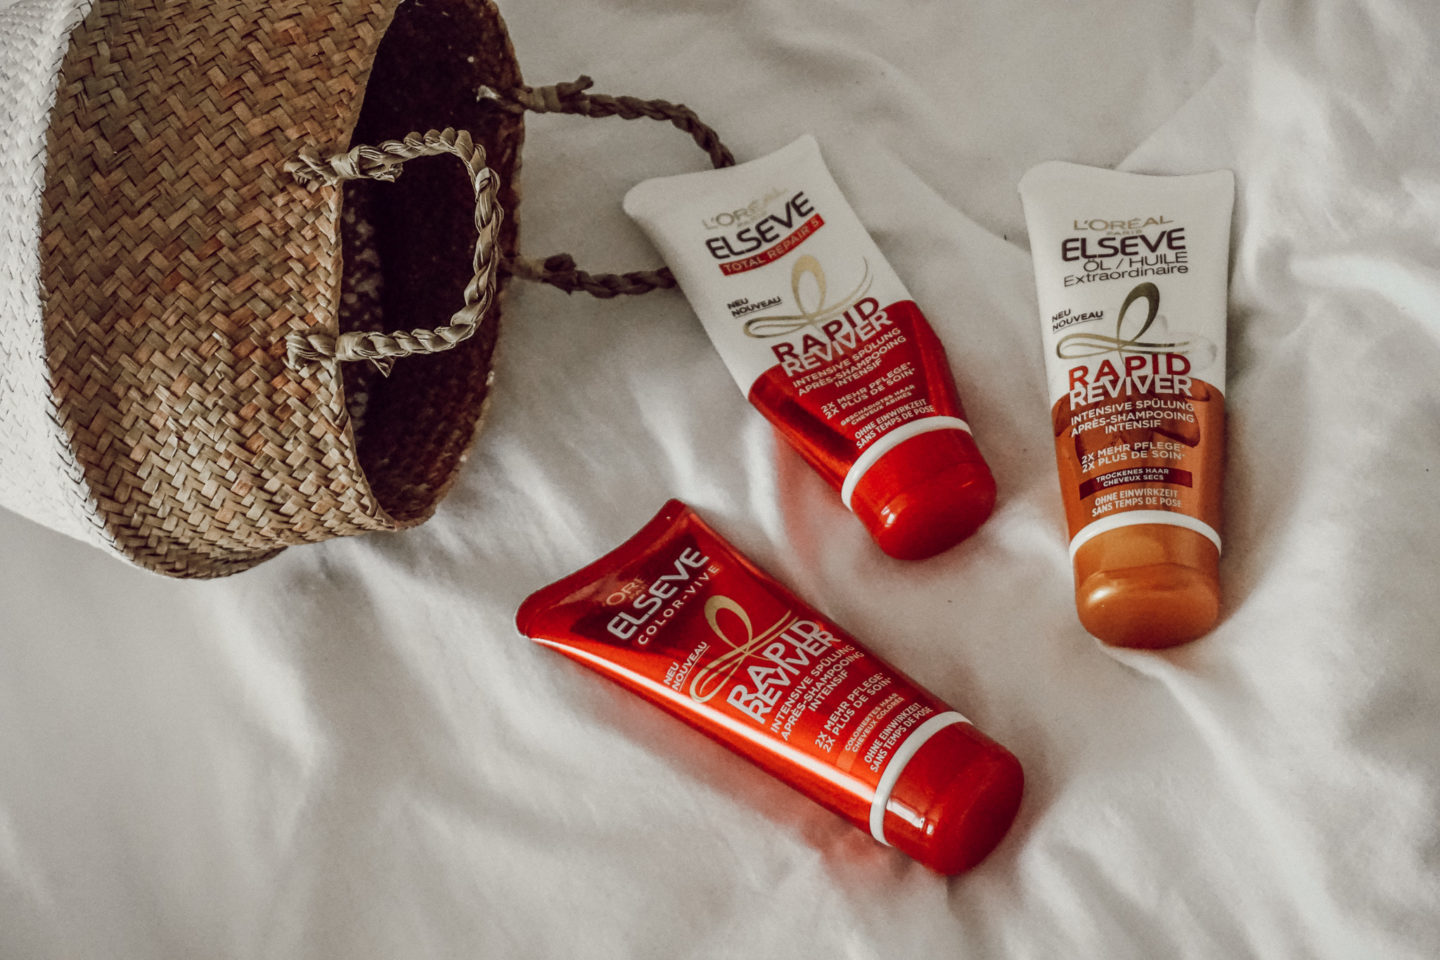 Elseve Loreal Conditioner